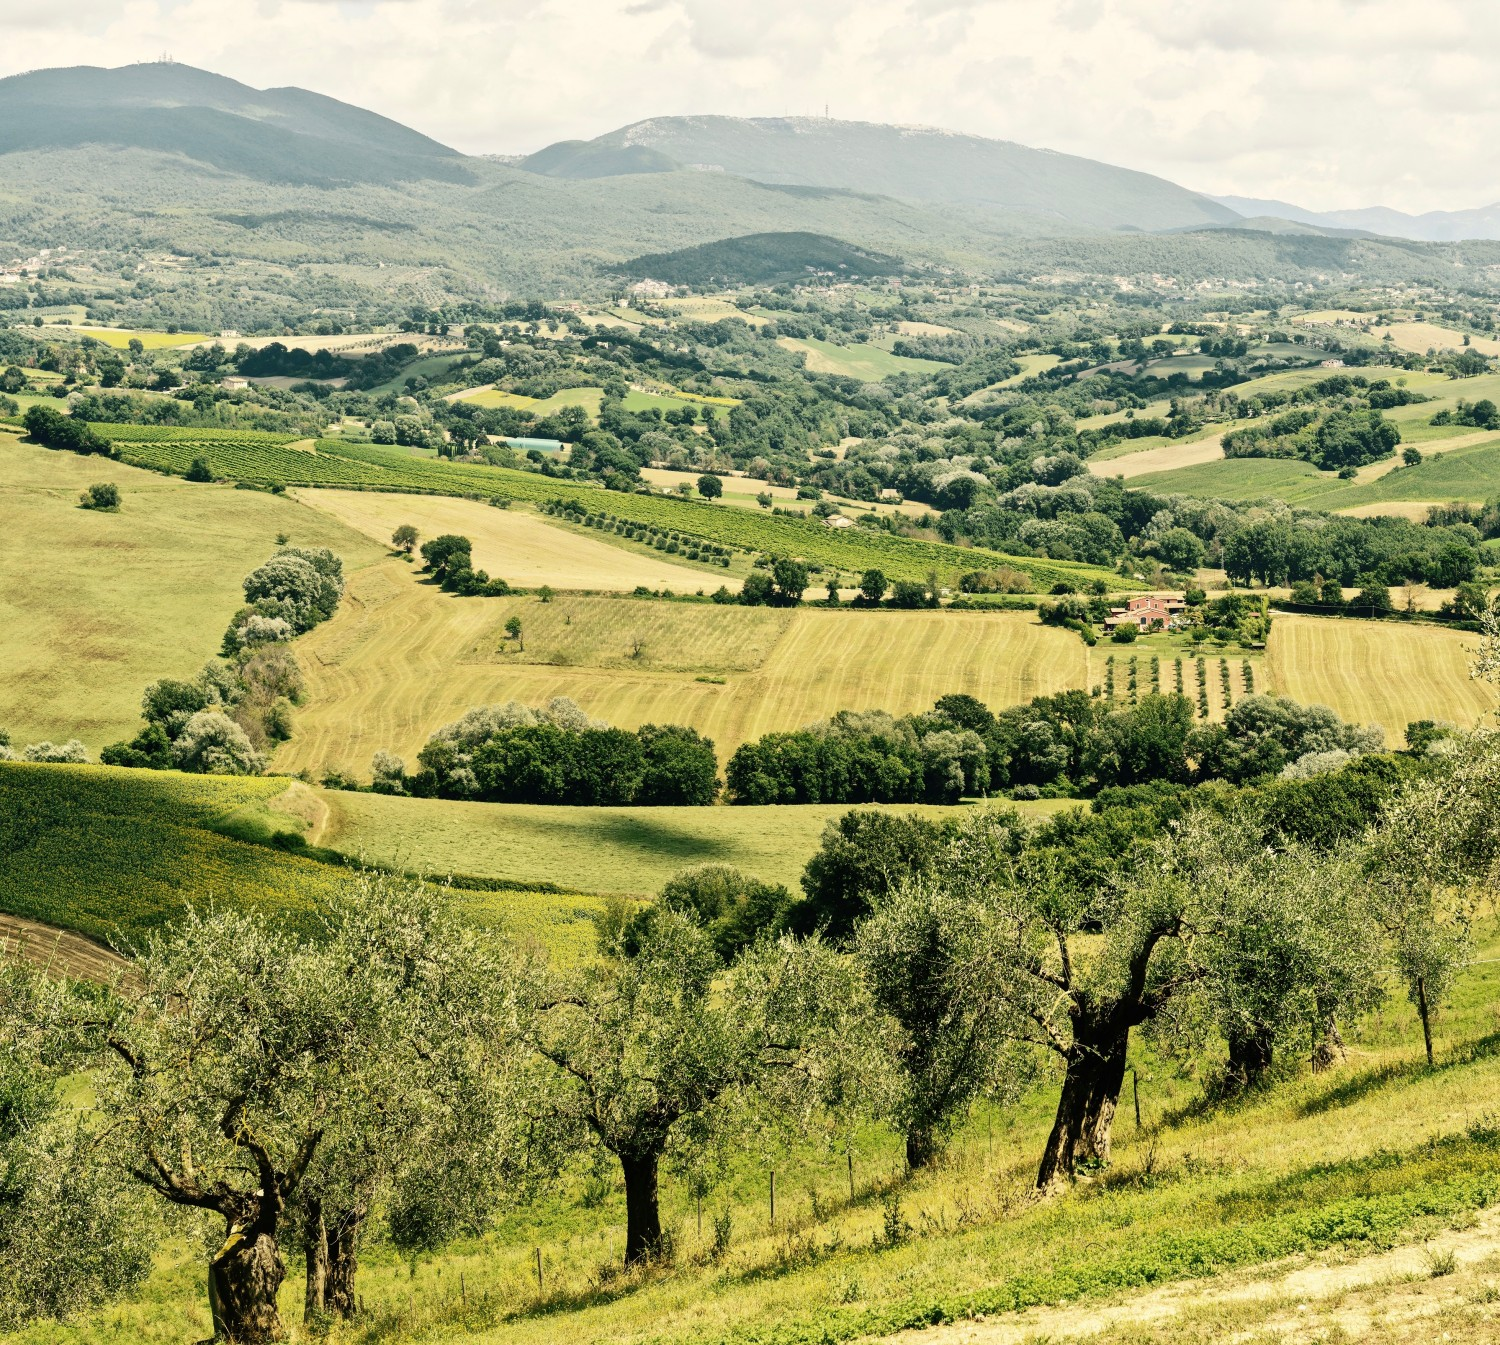 Mrs. McGarrigle's Culinary Tours to Umbria, Italy